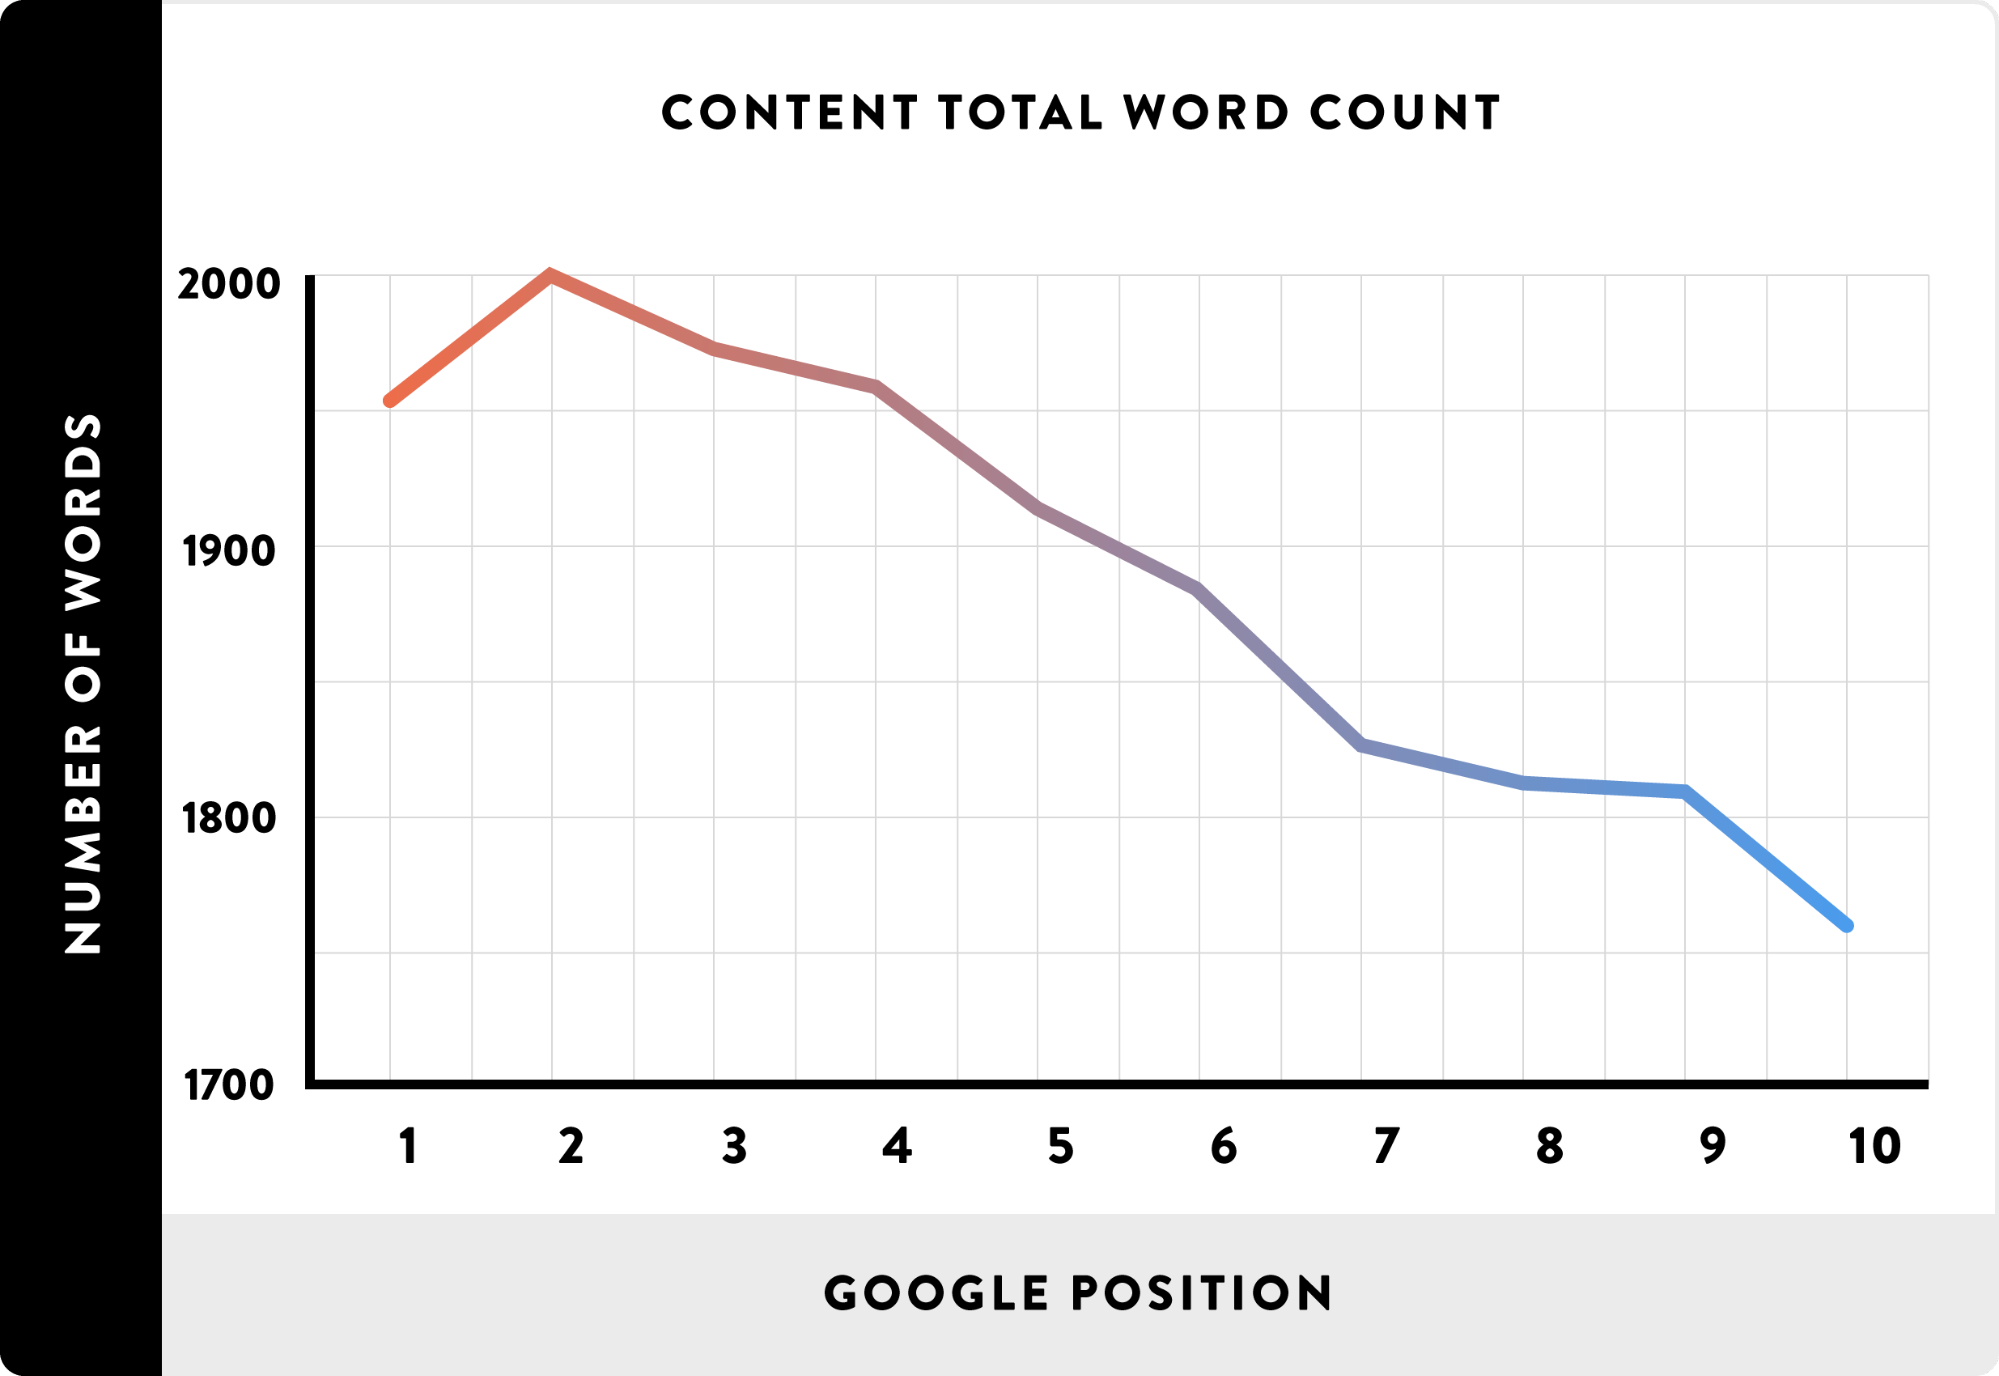 Google position and wordcount